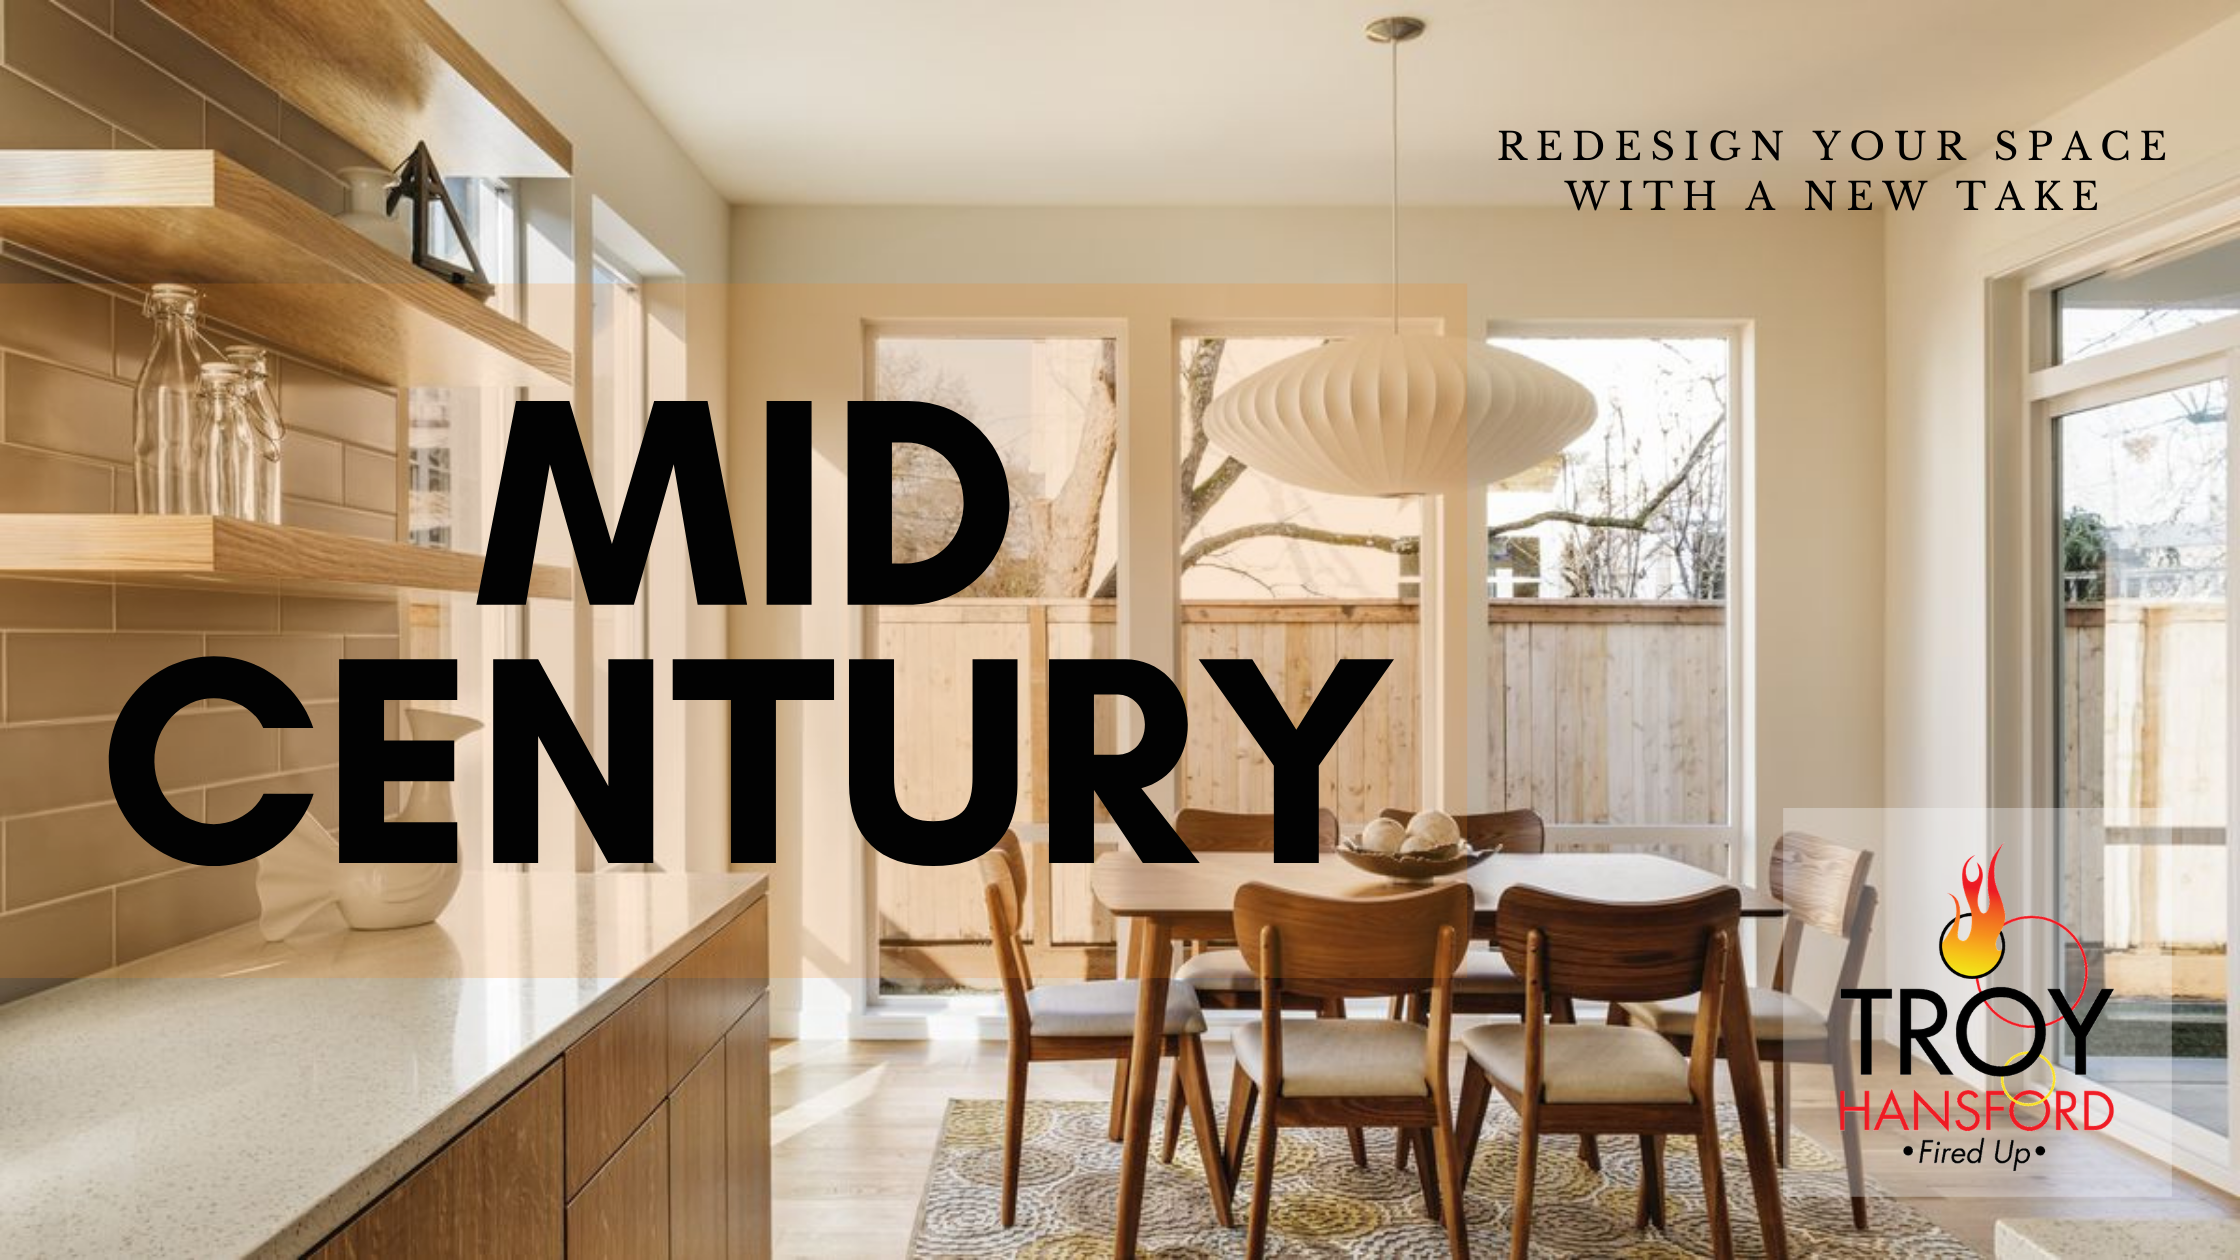 Mid Century Design tips from Troy Hansford